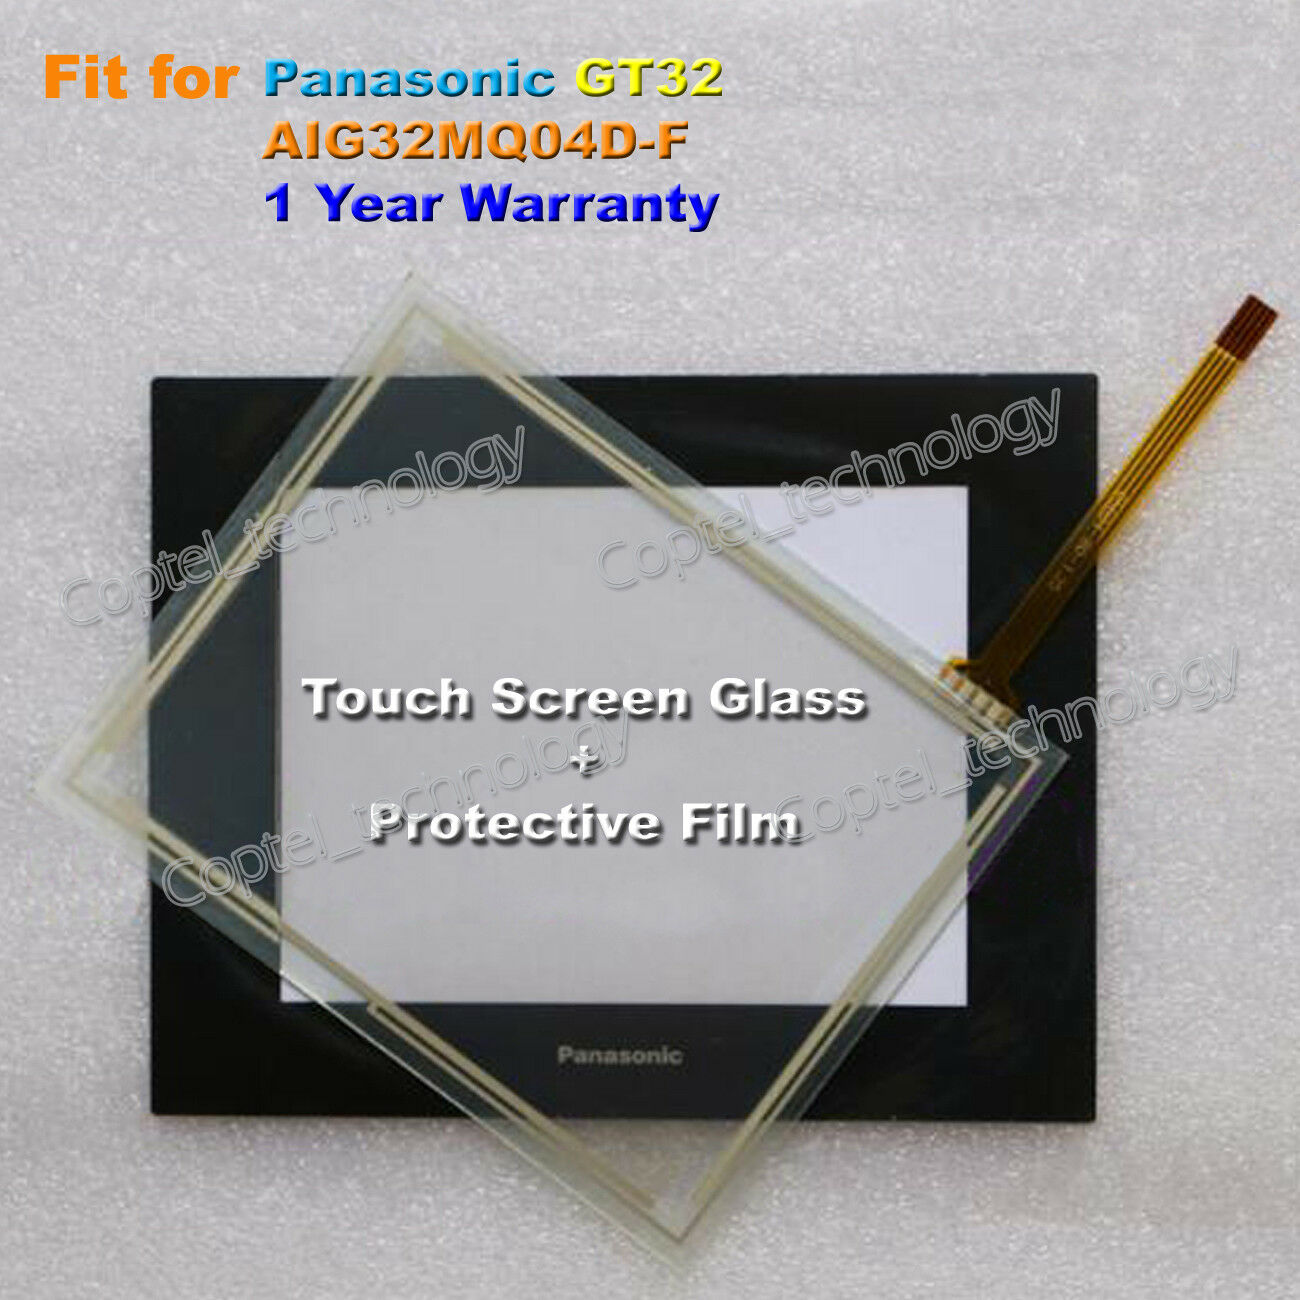 For Panasonic GT32 AIG32MQ04D Touch Screen Glass + Film 1 Year Warranty